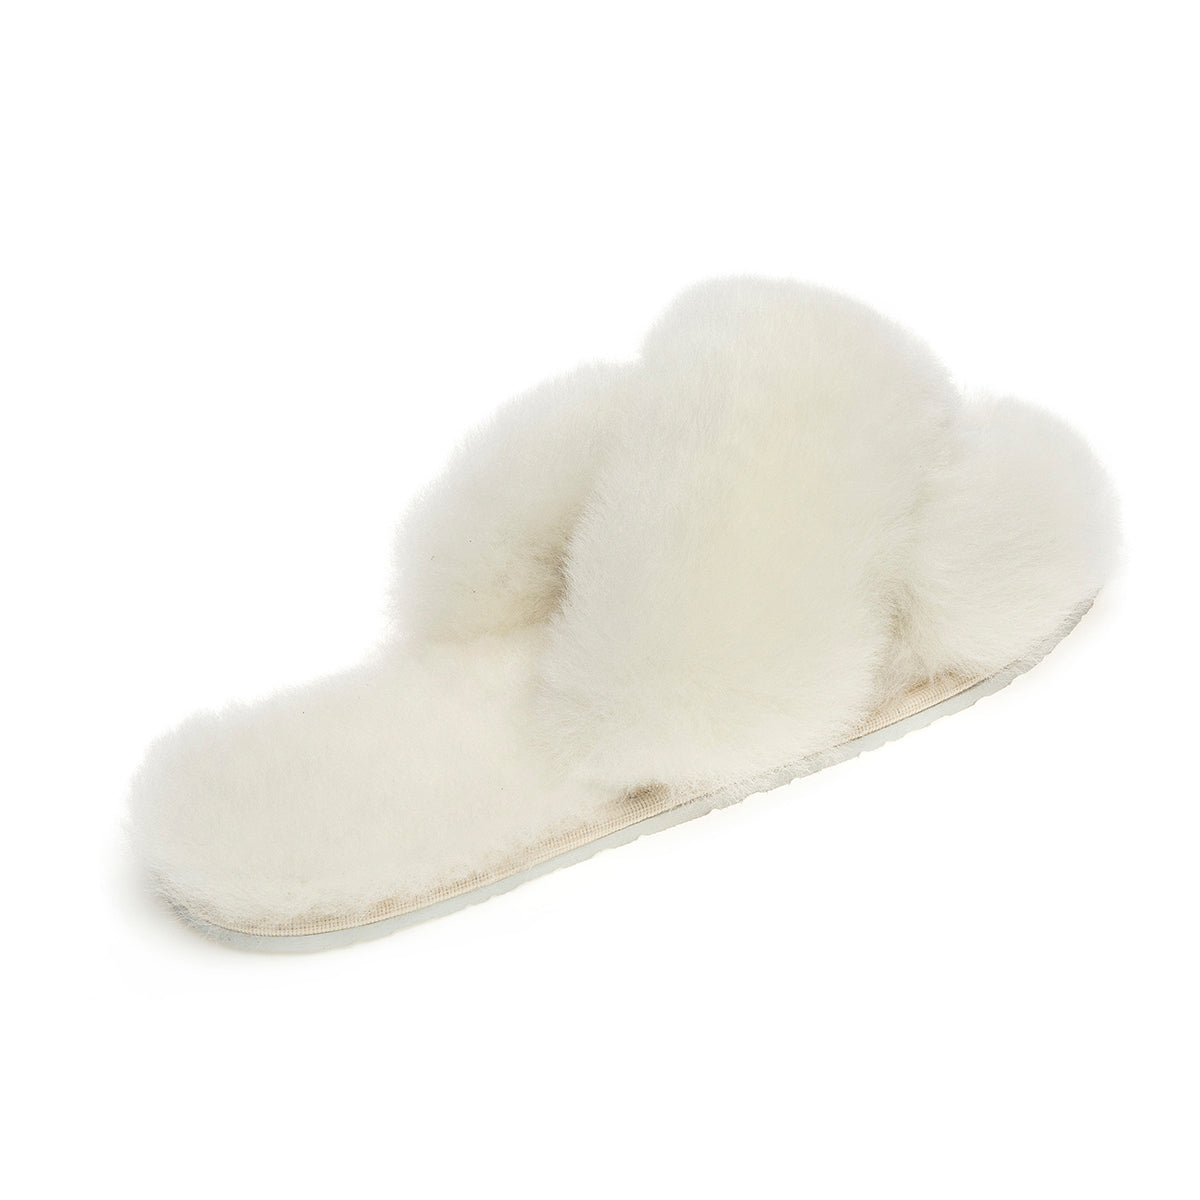 Sula Sheepskin Cross Slider Slippers - Natural